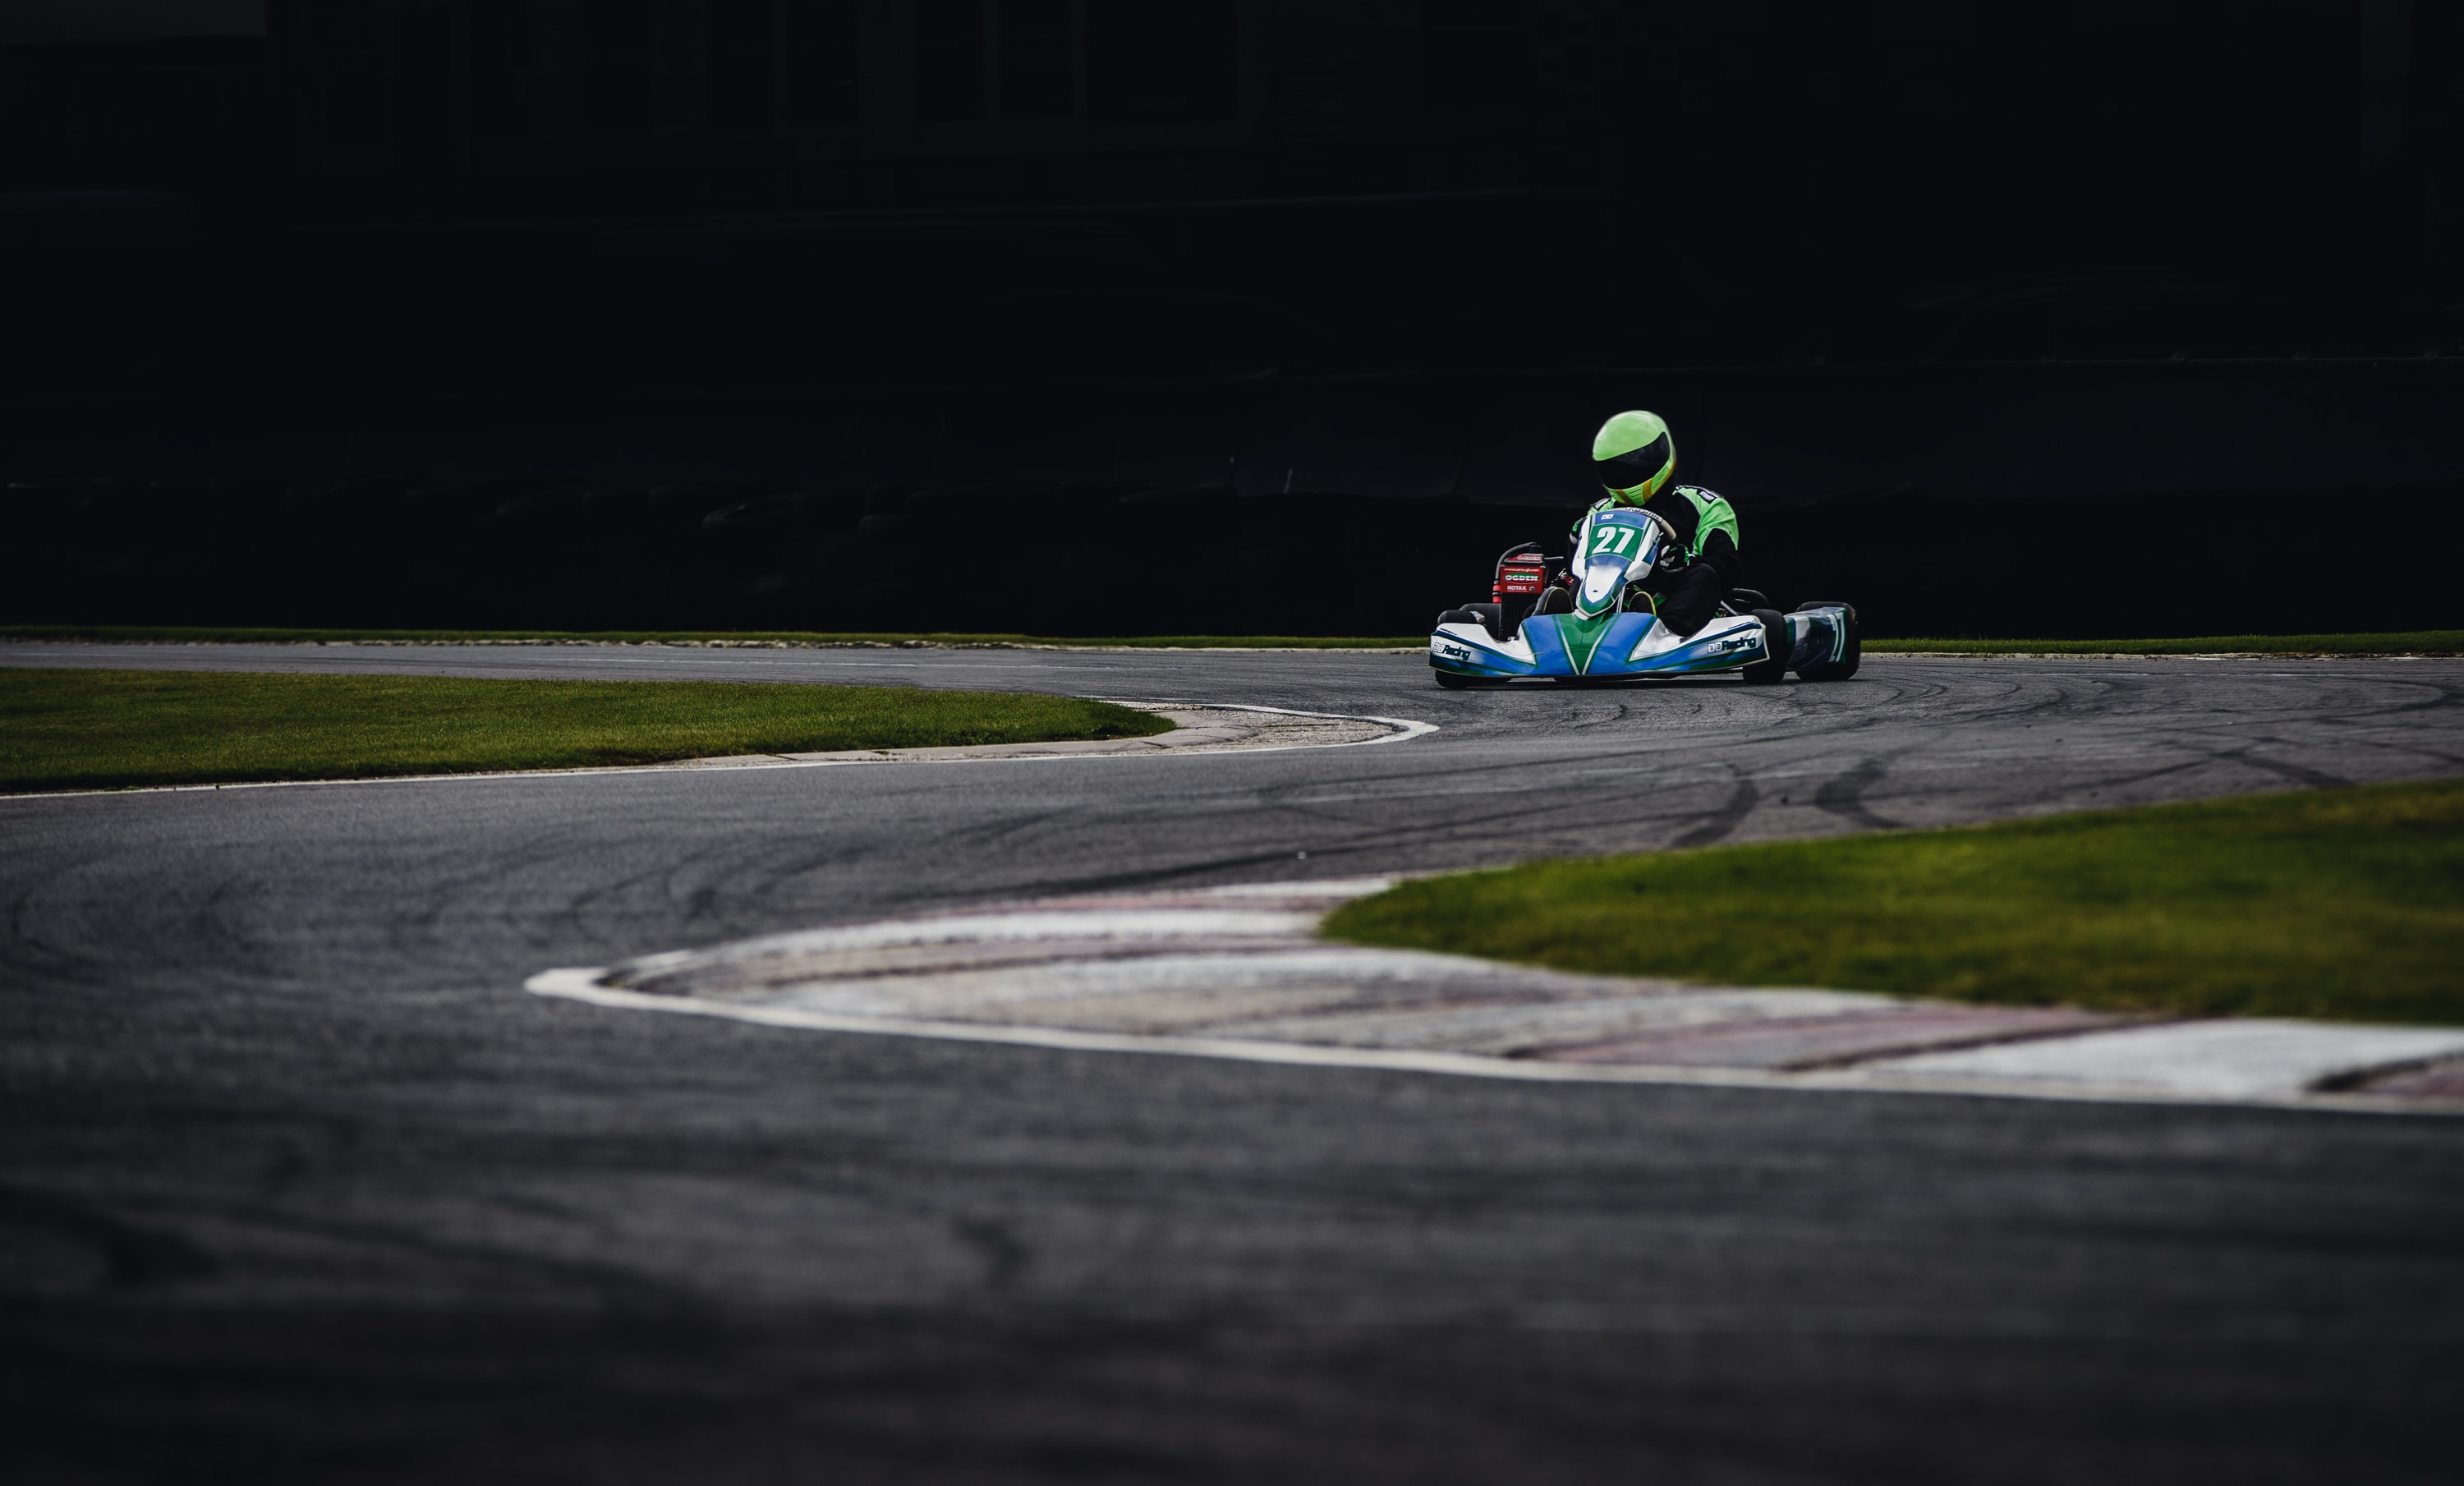 person riding go kart racing on race track